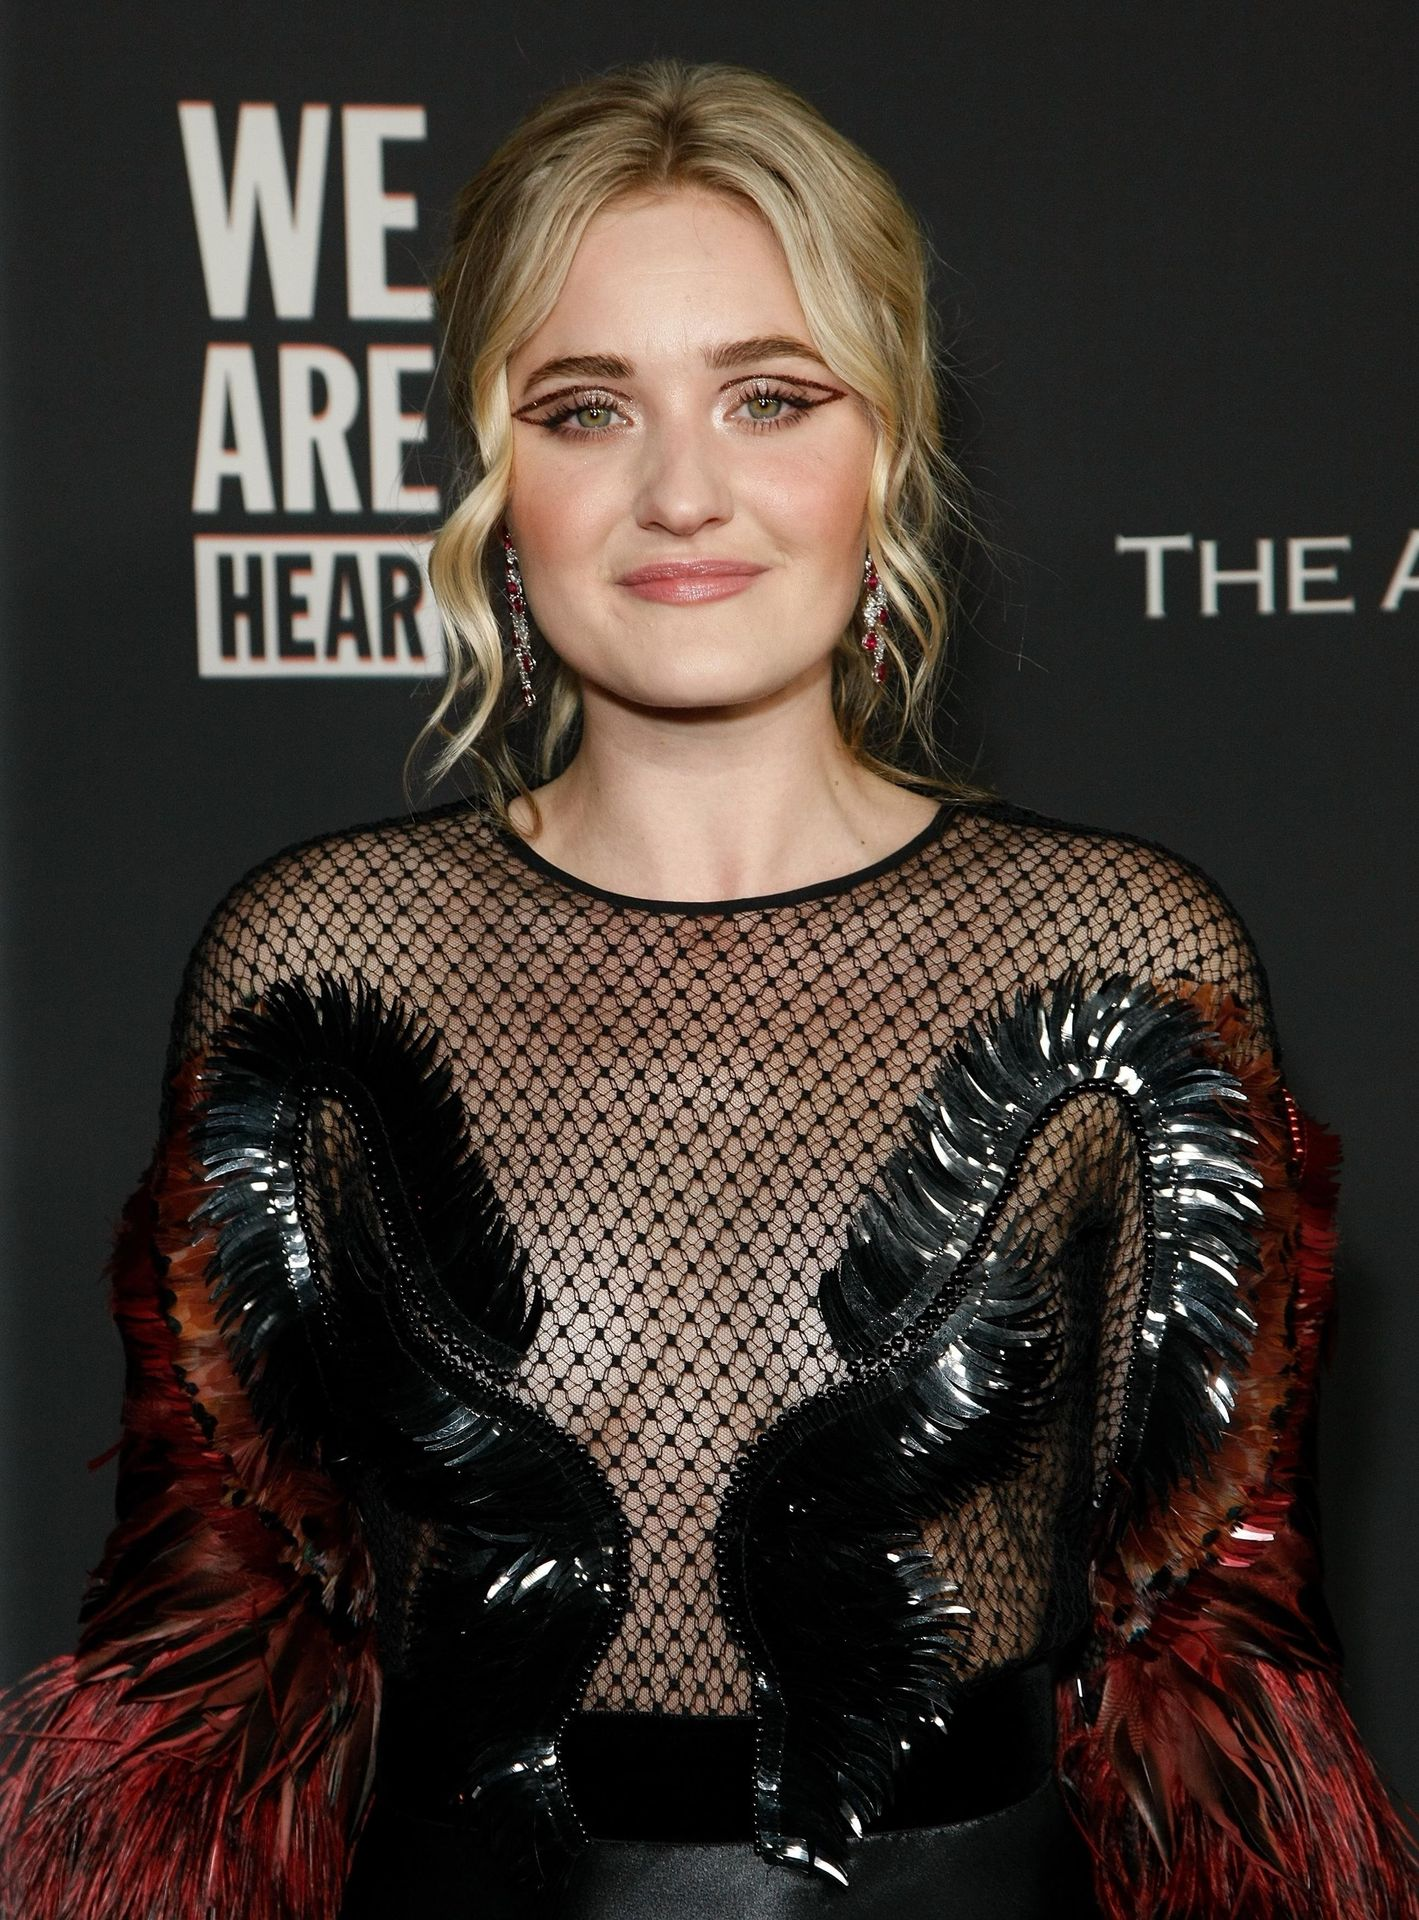 Aj Michalka Shows Her Tits At The Art Of Elysium's Event 0007